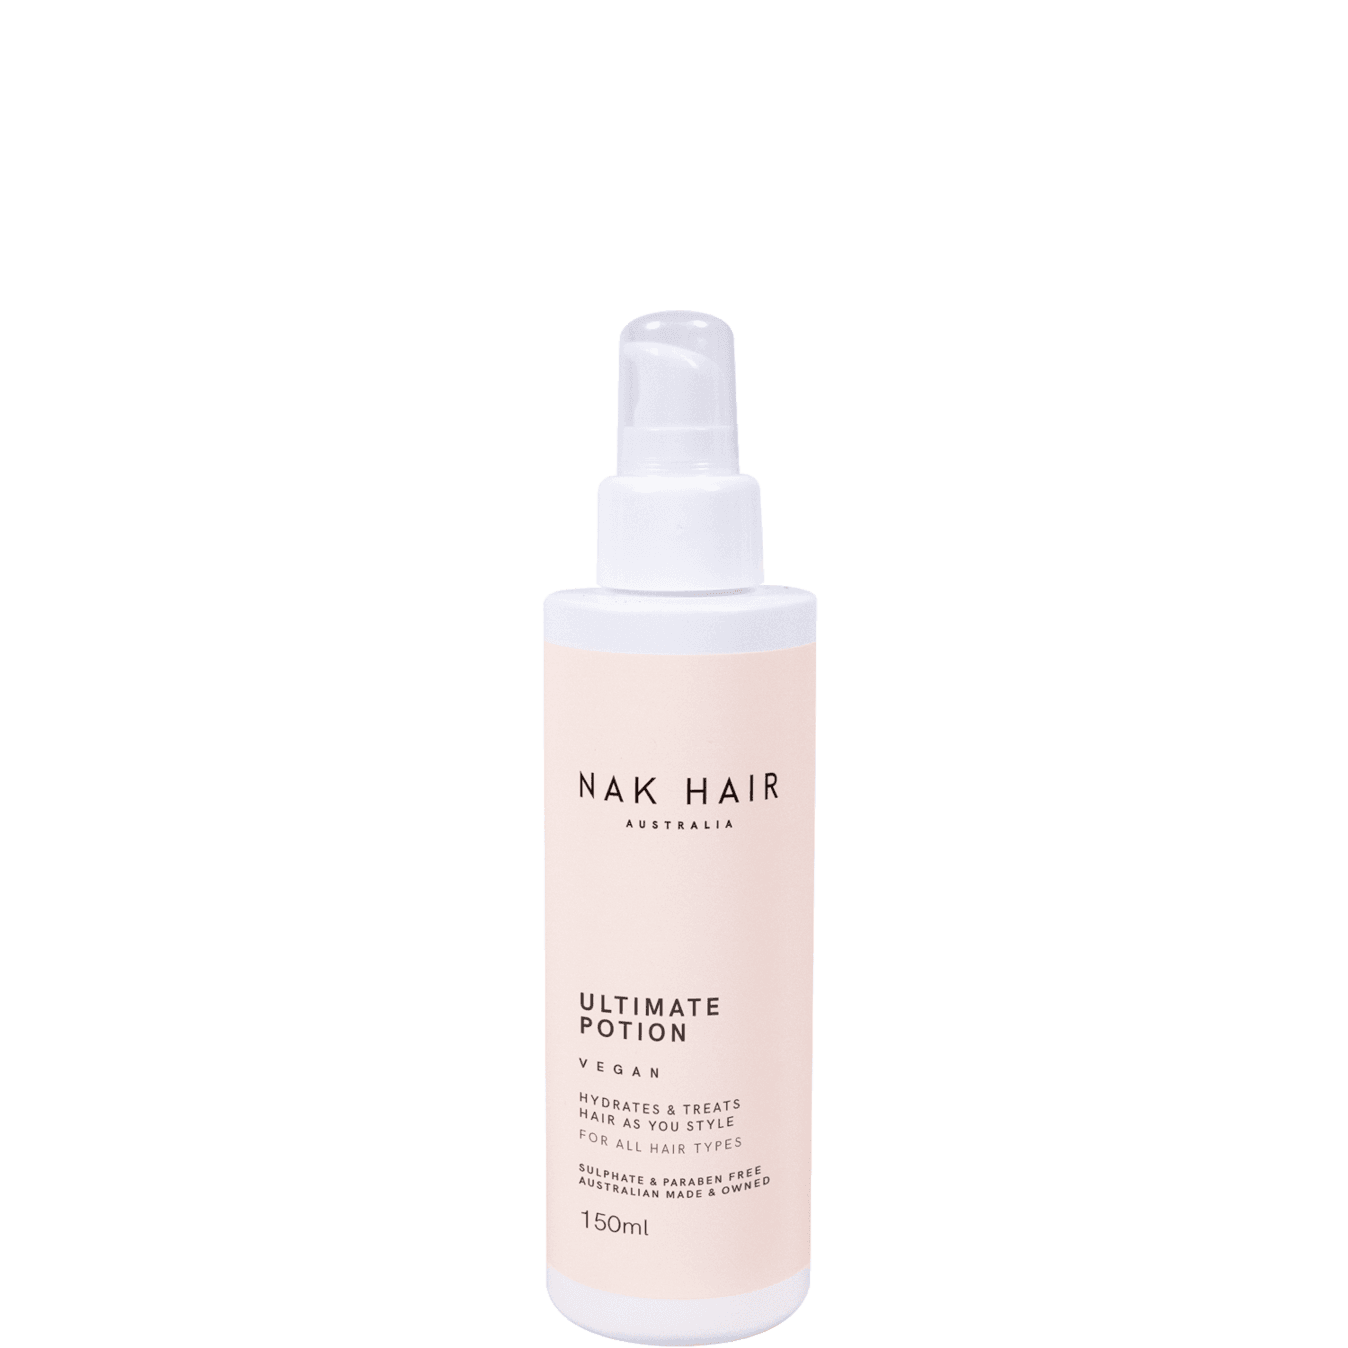 Nak Hair Ultimate Potion Styling Serum 150ml